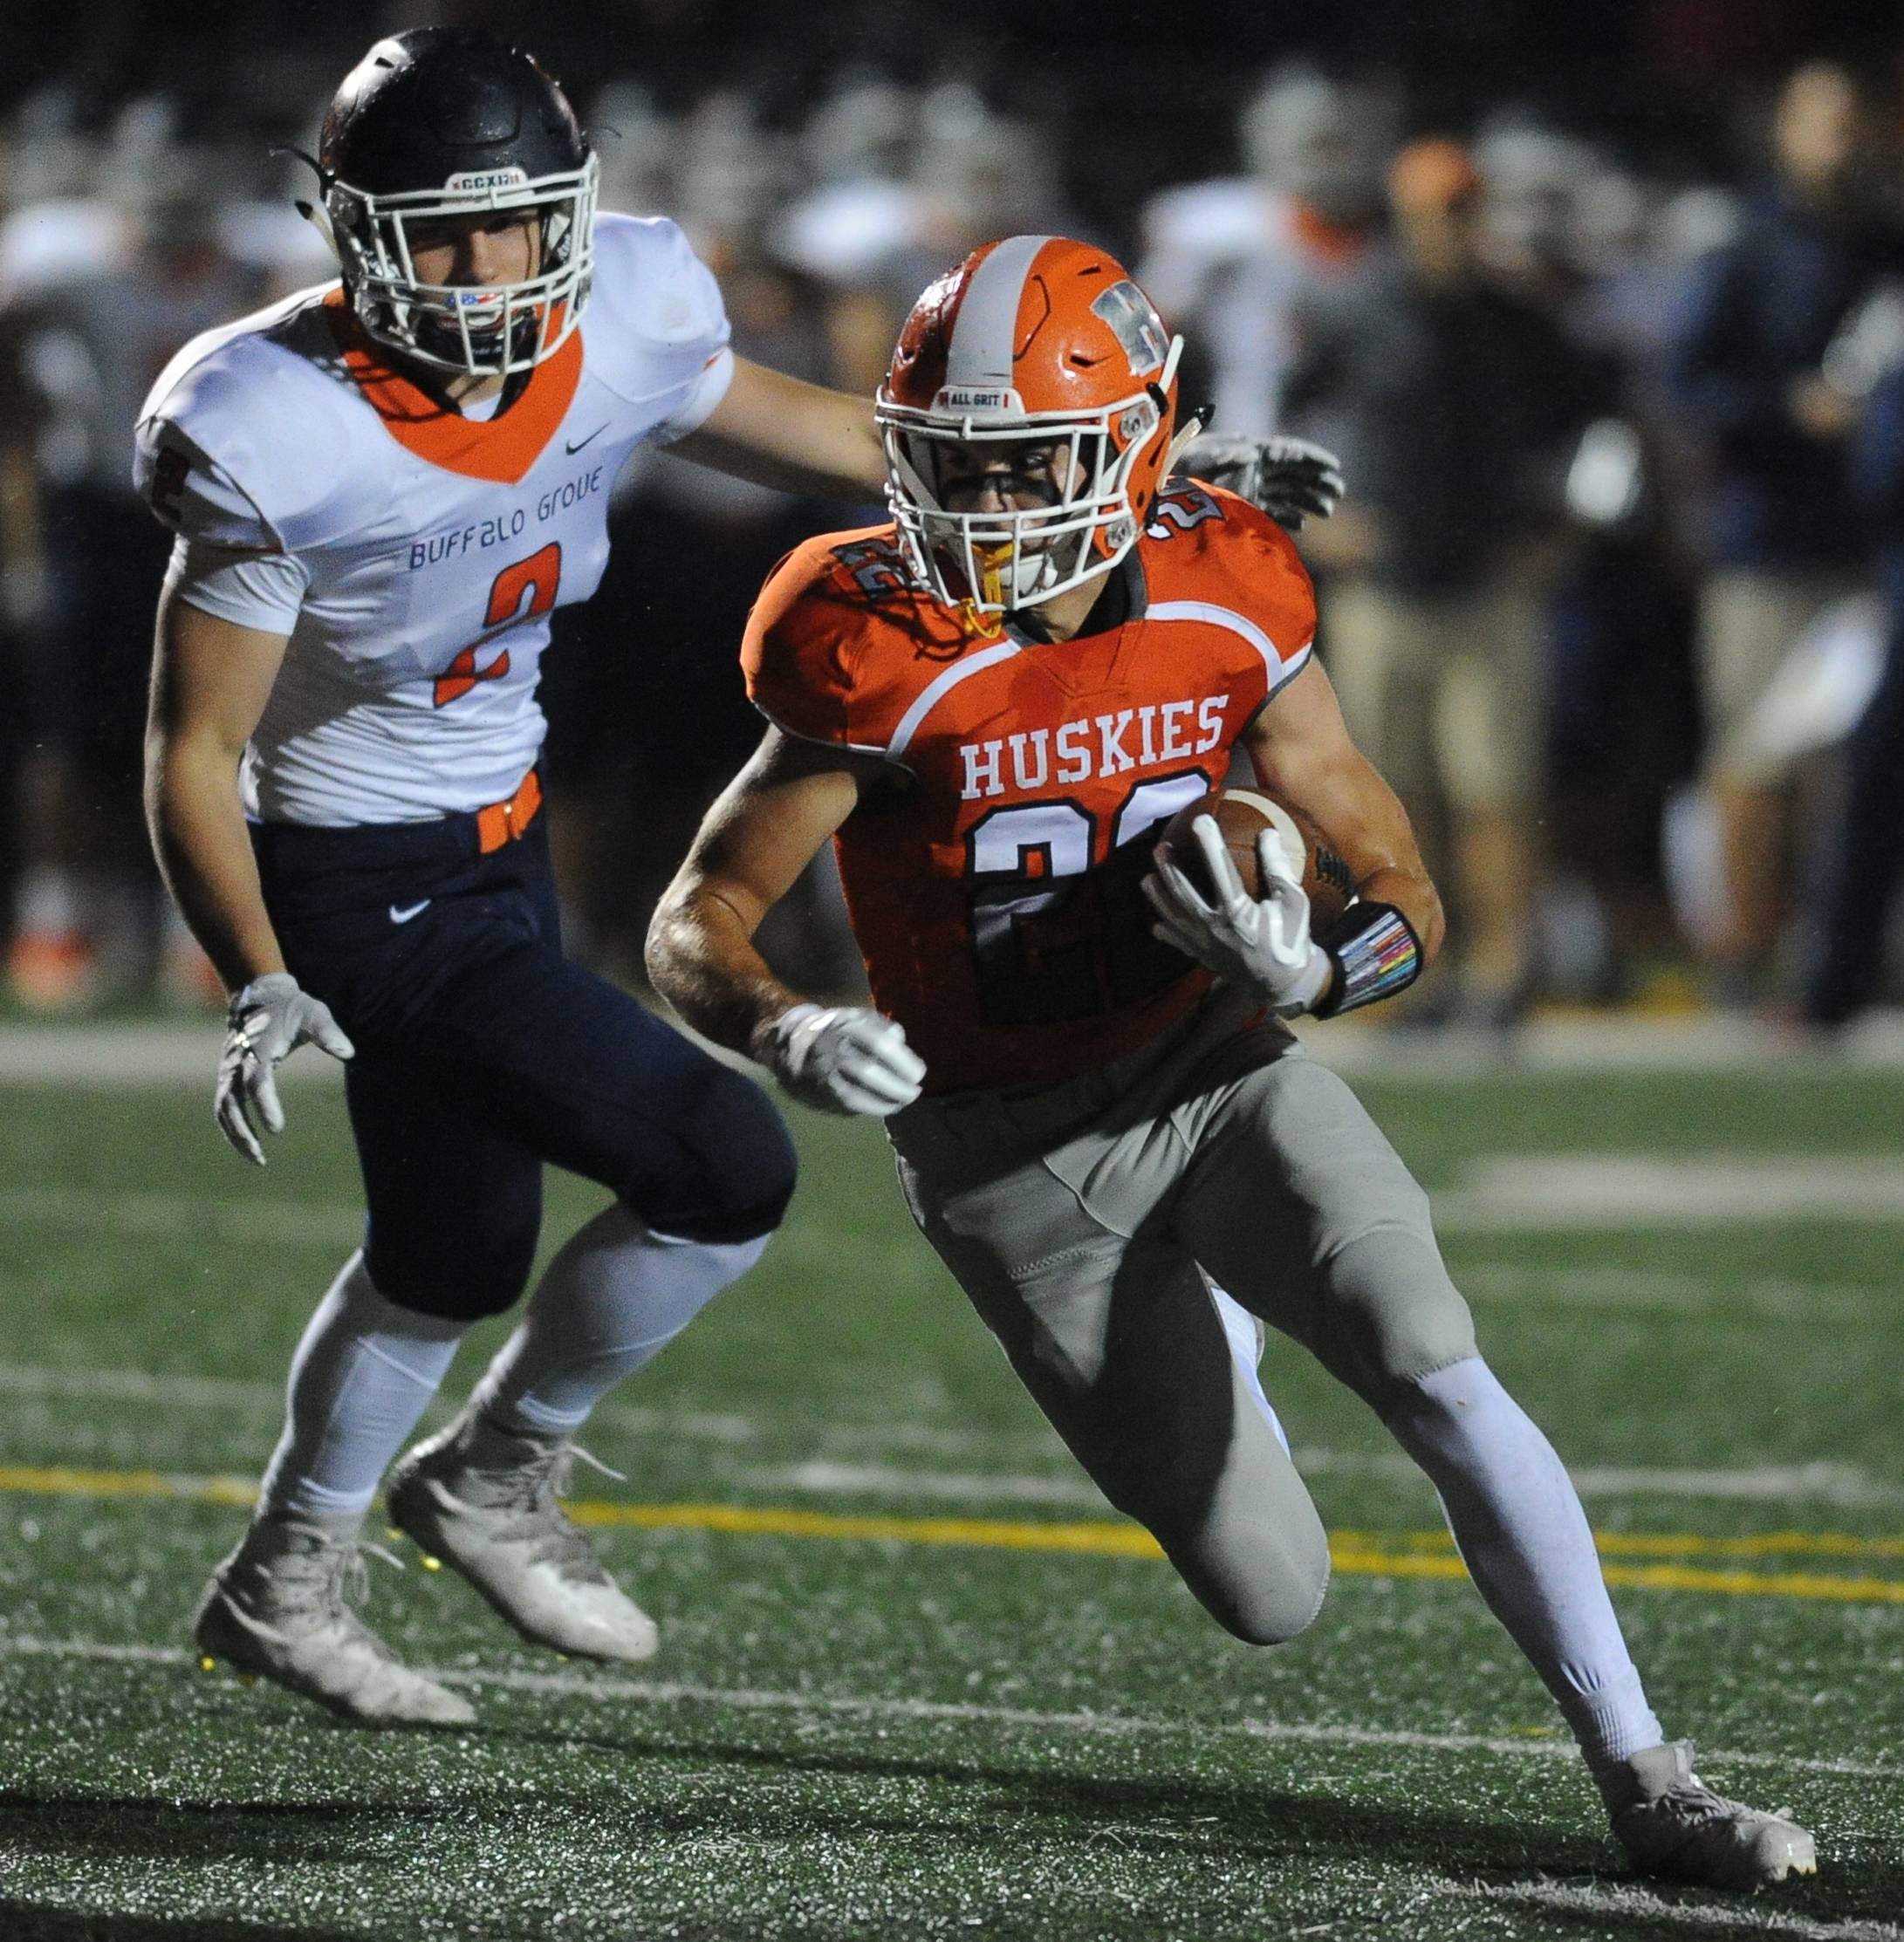 Photos from the Buffalo Grove vs. Hersey football game on Friday, Oct. 6, in Arlington Heights.